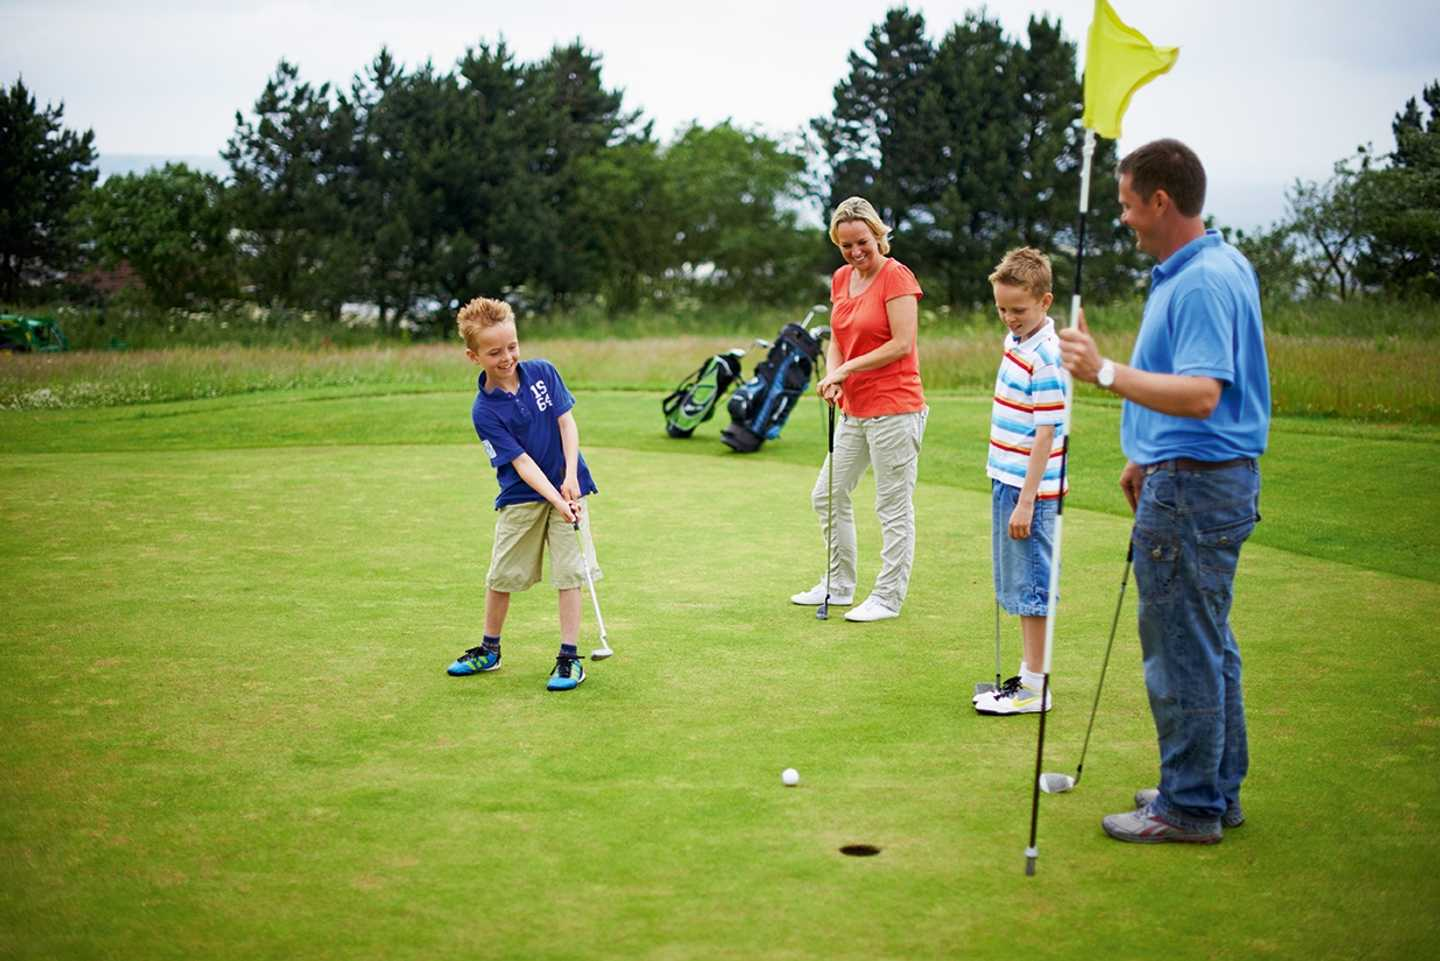 A family playing a round of golf